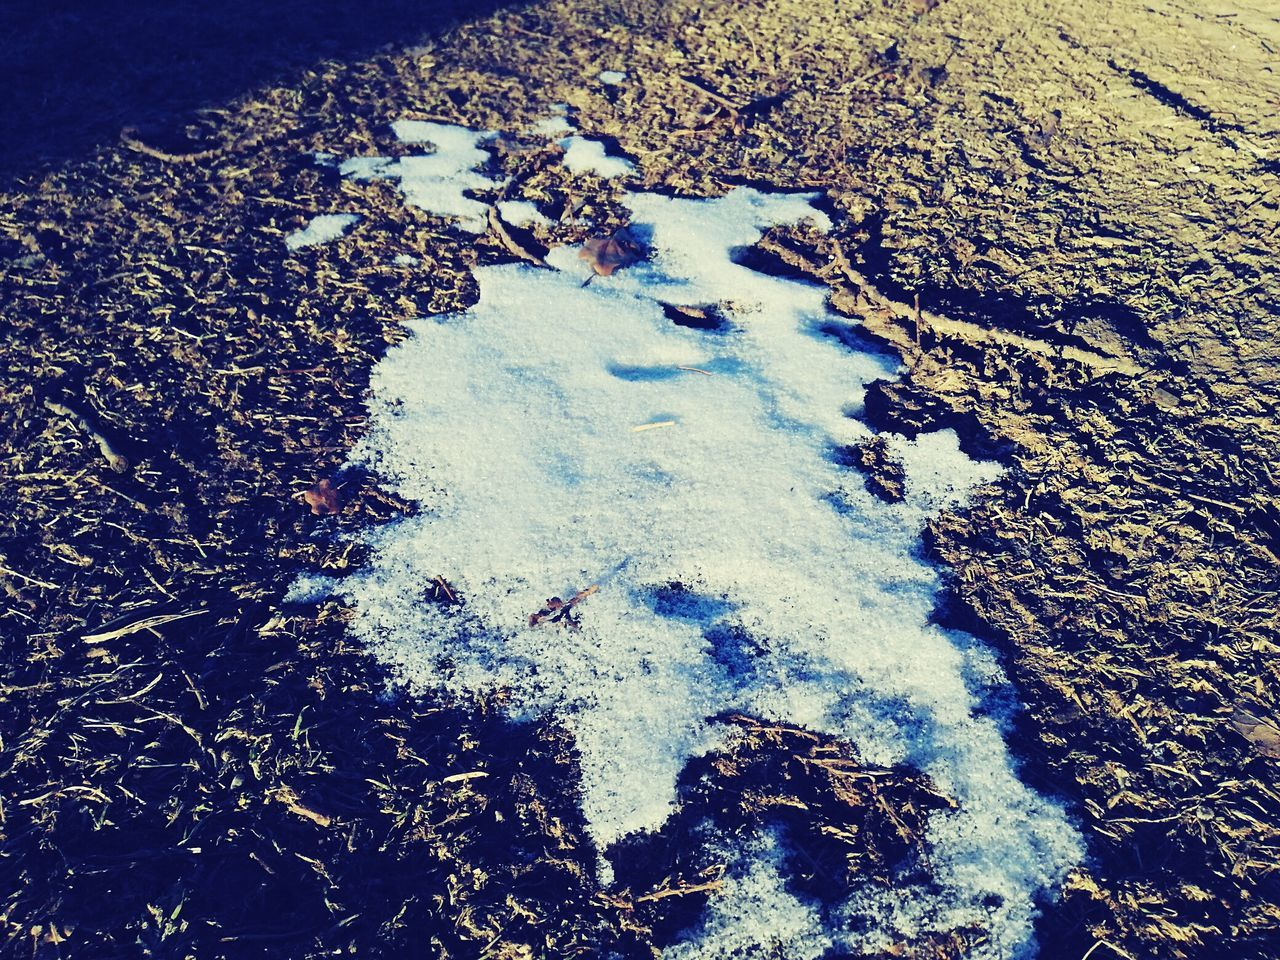 High Angle View Outdoors No People Nature Day Beach Close-up Paw Print Animal Track Mud Beuty Of Nature Beauty In Nature Frosty Morning Winter Grassfield Shiny Field Landscape Nature Reflection Earth Iceland